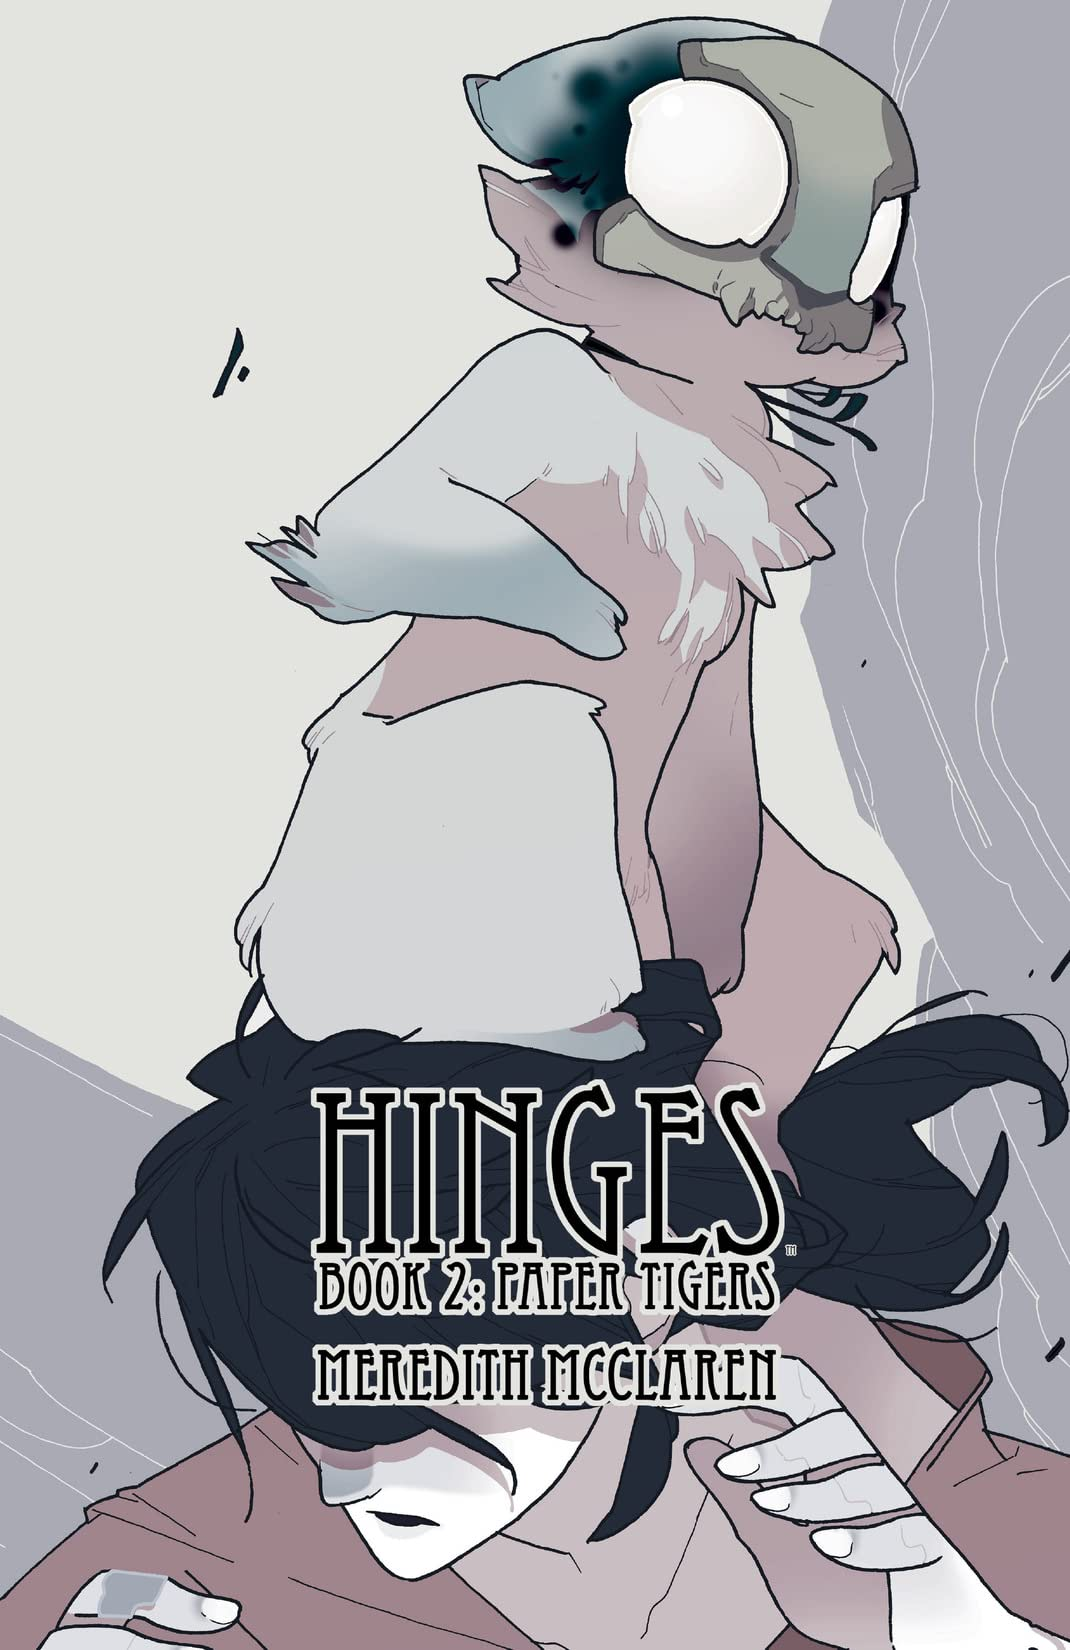 Hinges Vol. 2: Paper Tigers